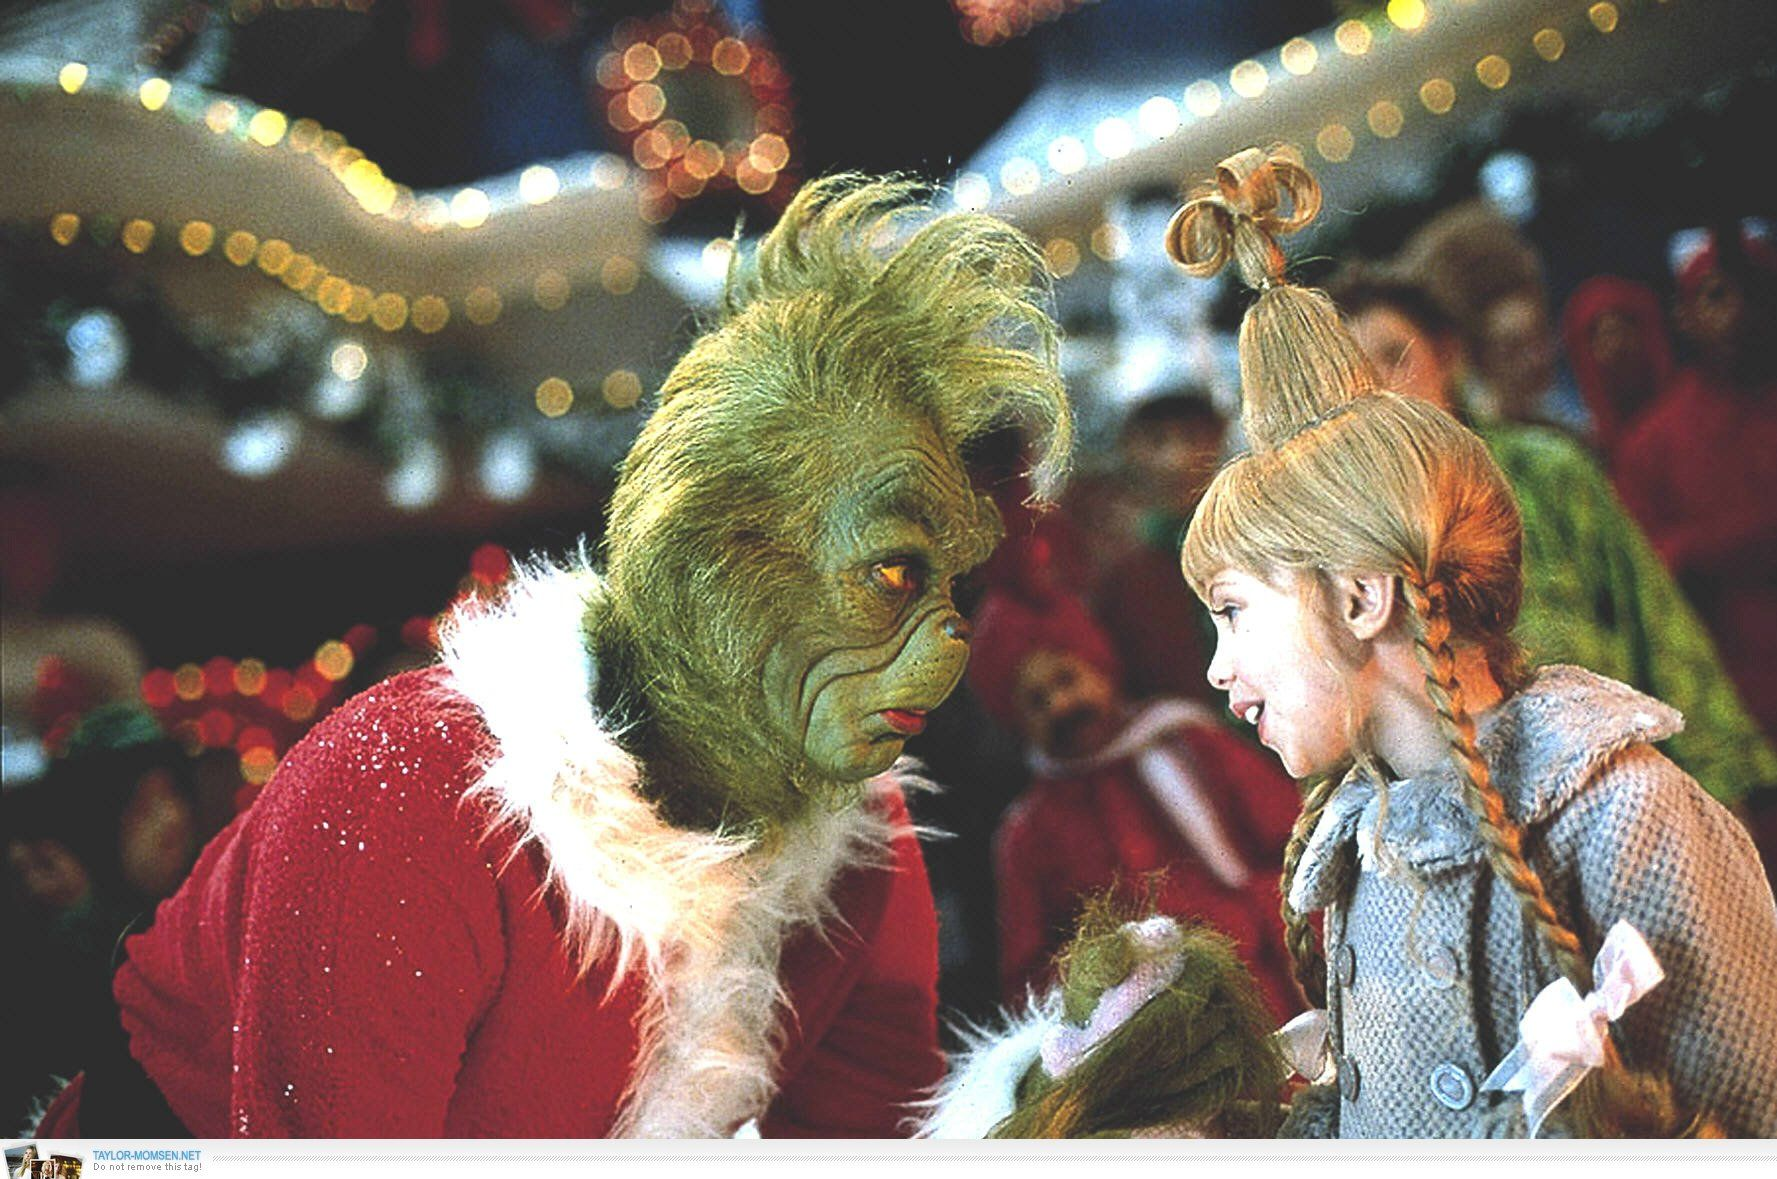 How The Grinch Stole Christmas Photo The Grinch Grinch Stole Christmas Grinch The Grinch Movie